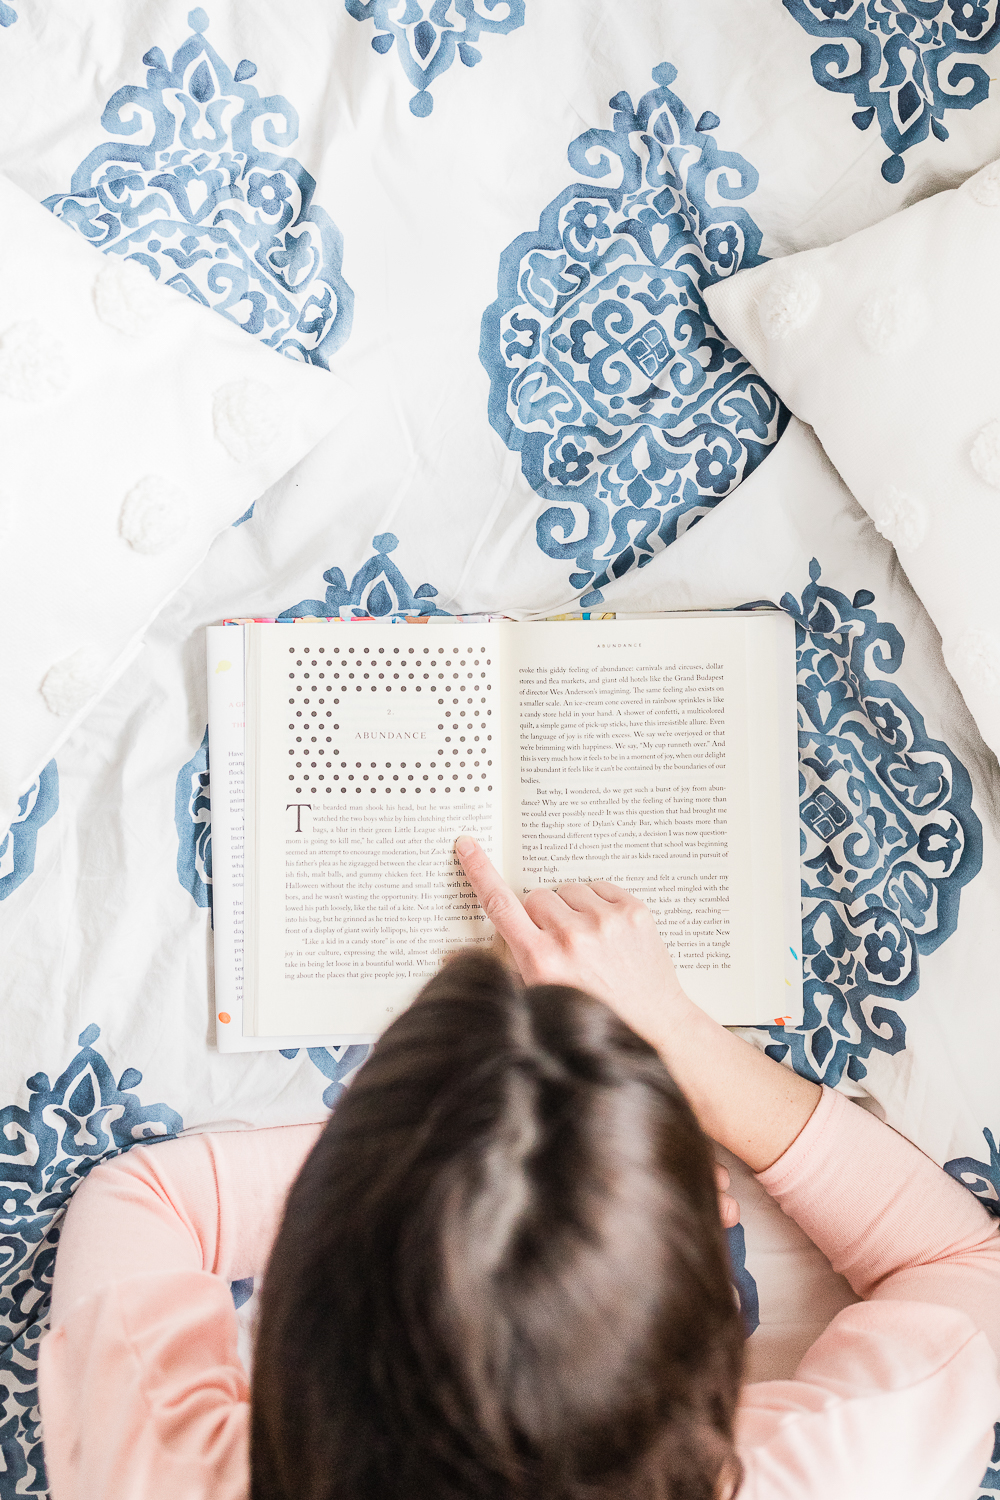 Girlboss Reading List: 10 of the Best Books for Women in 2019 by southern lifestyle blogger Stephanie Ziajka from Diary of a Debutante, best business books for women, best self help books for women in their 20s, cute reading photo, cute reading flat lay photo